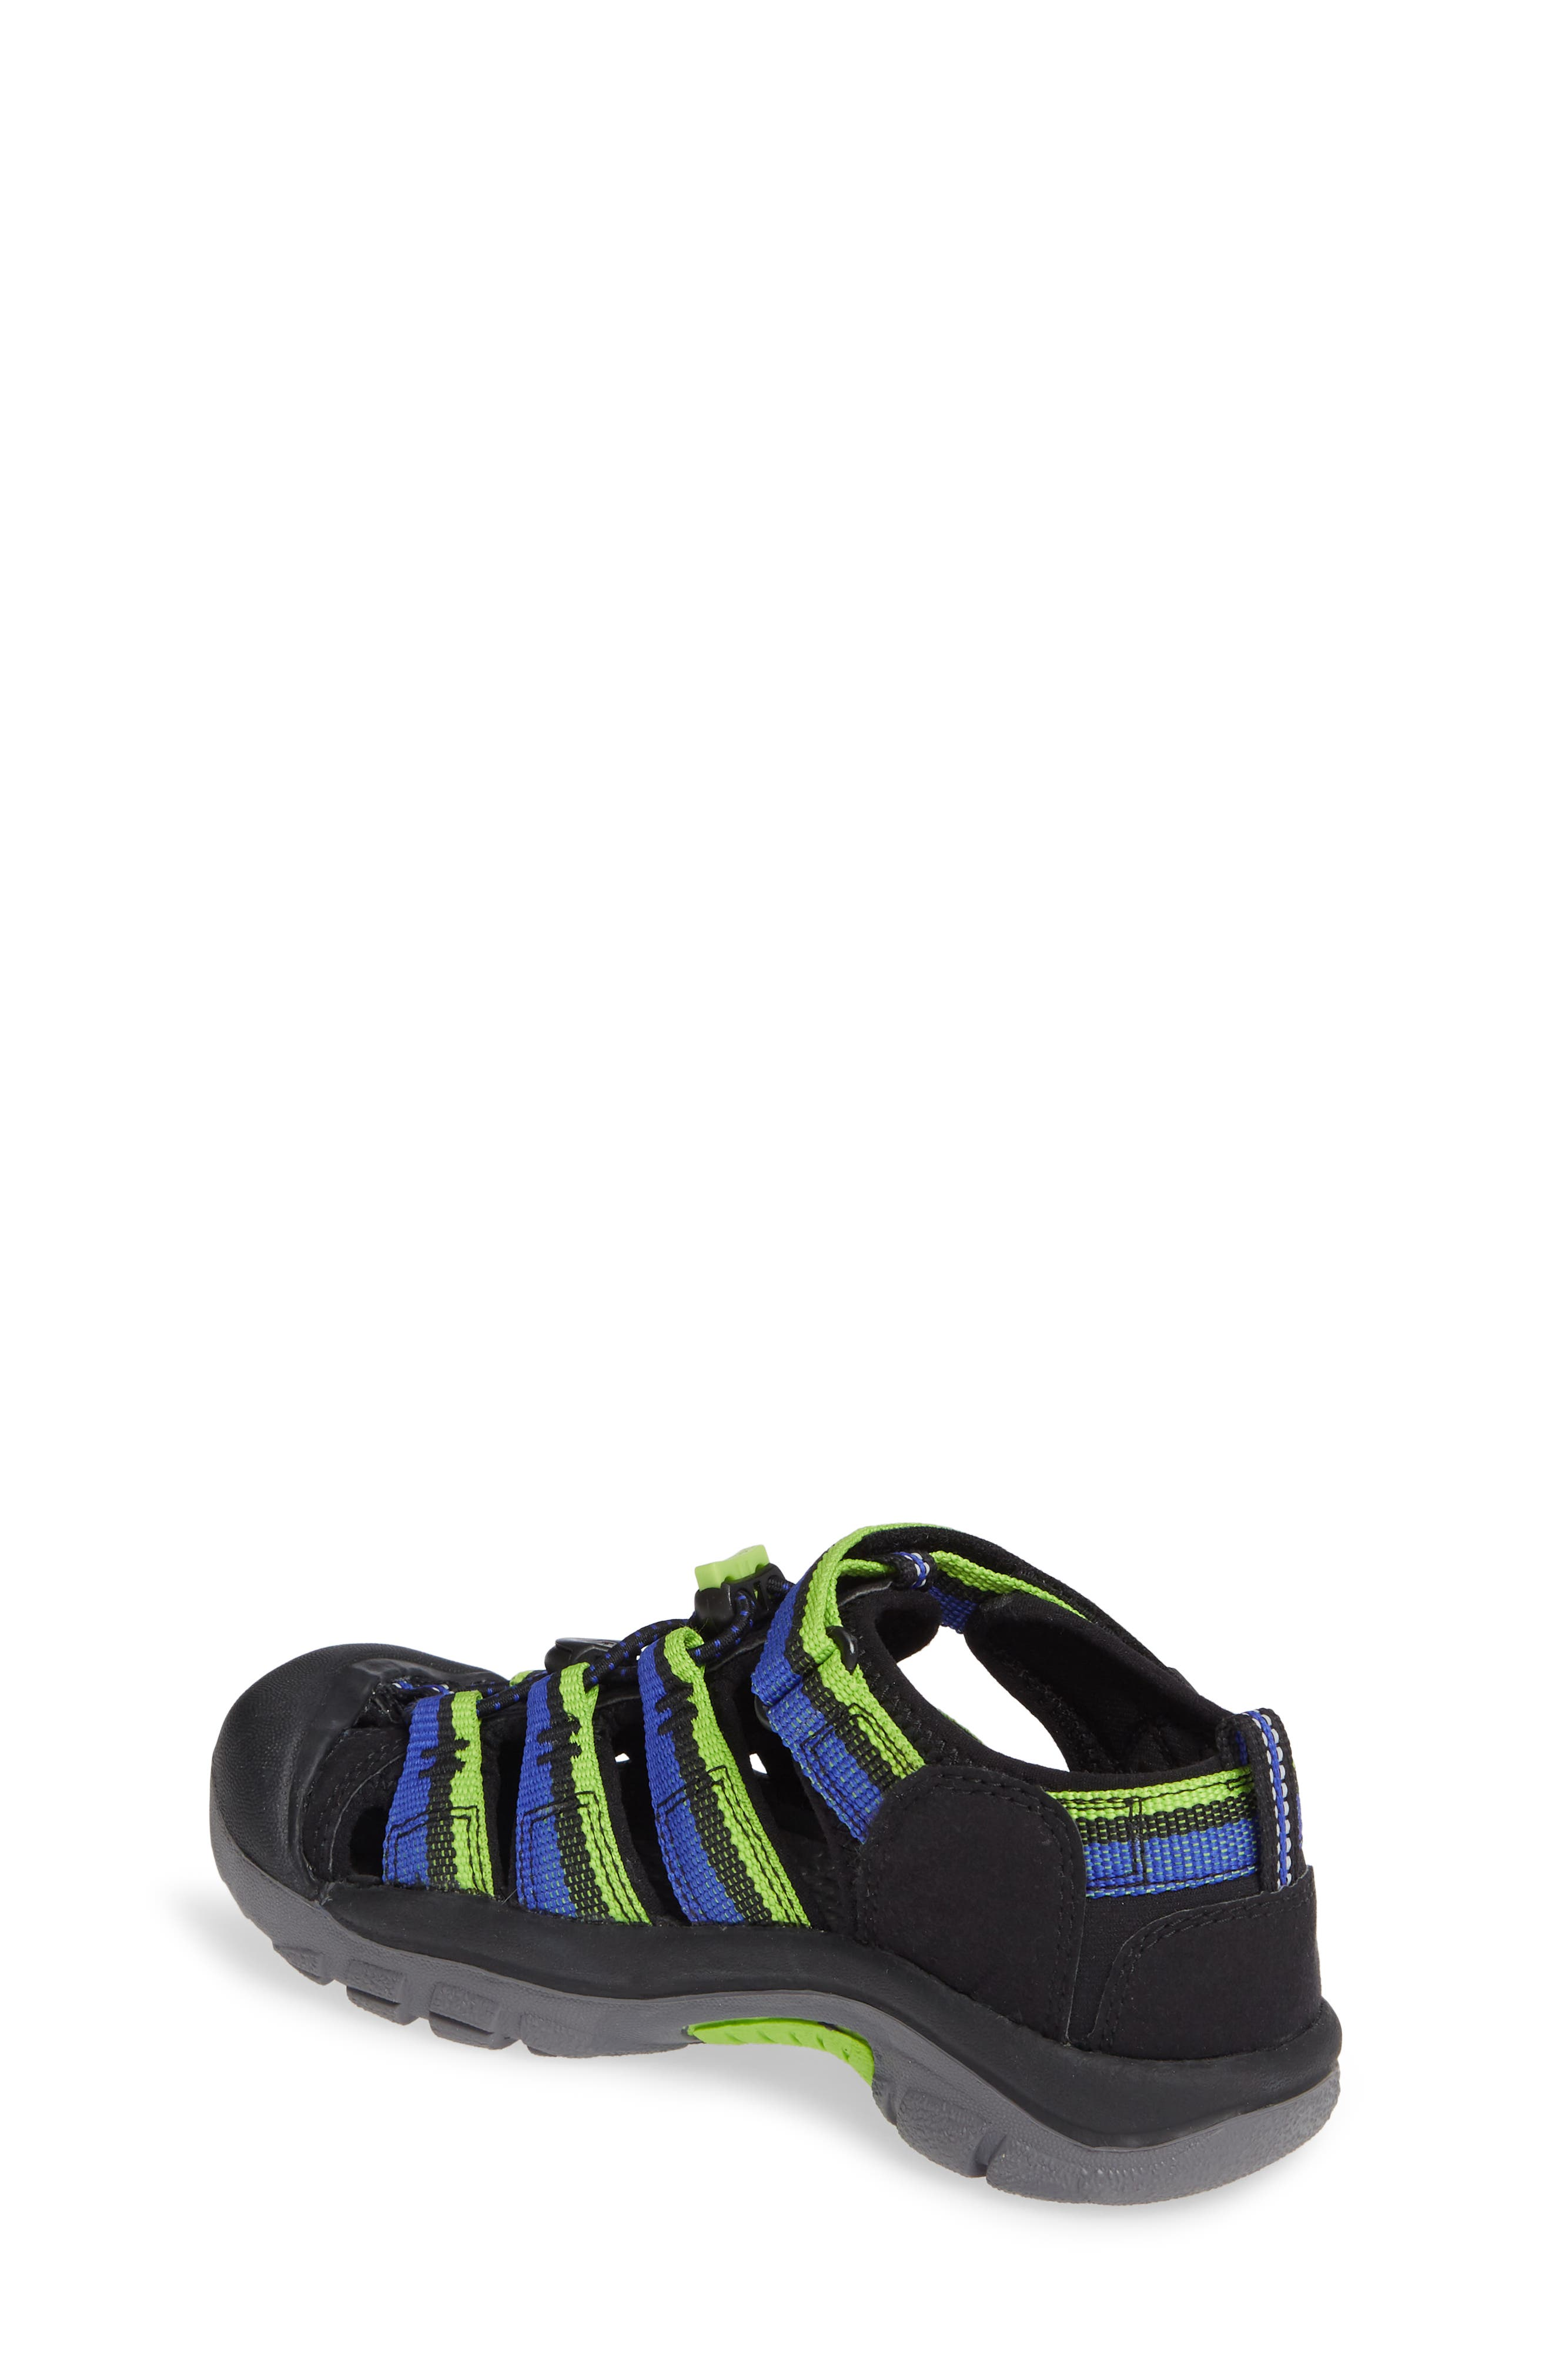 ,                             'Newport H2' Water Friendly Sandal,                             Alternate thumbnail 254, color,                             005